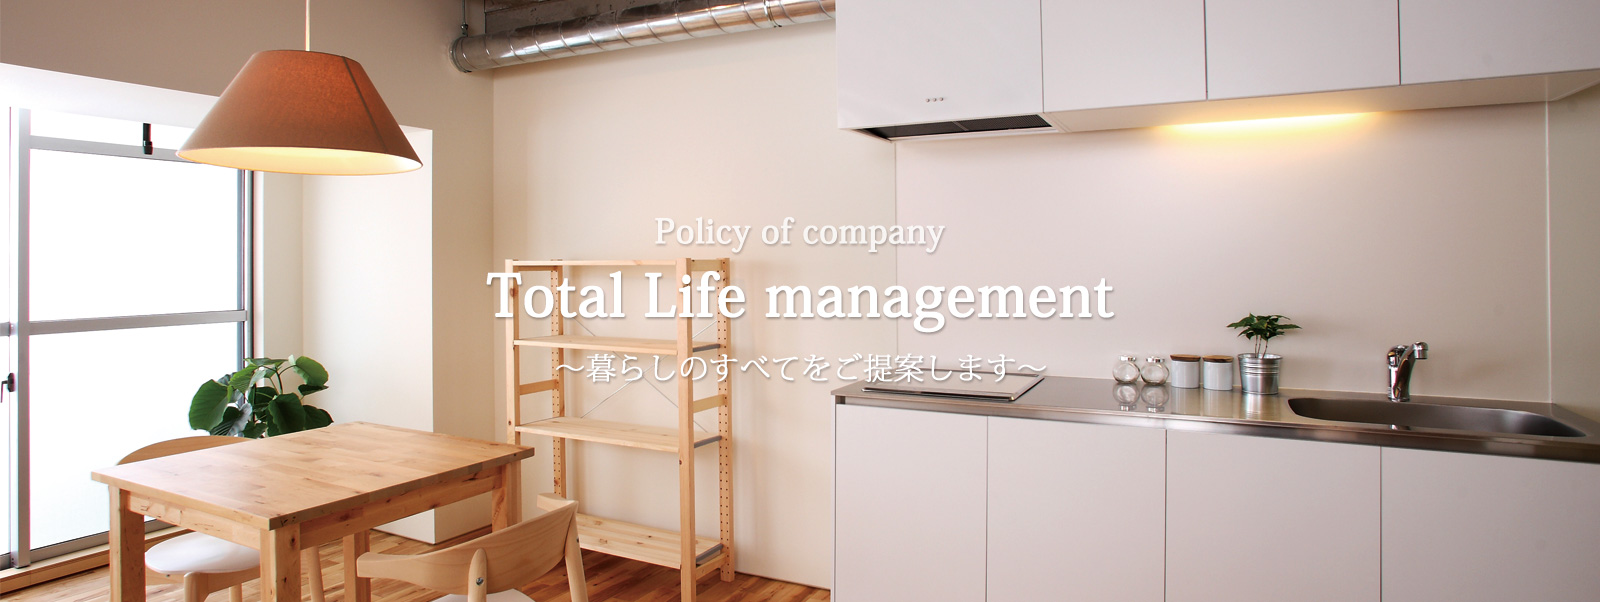 Policy of company Total life management 暮らしのすべてをご提案します